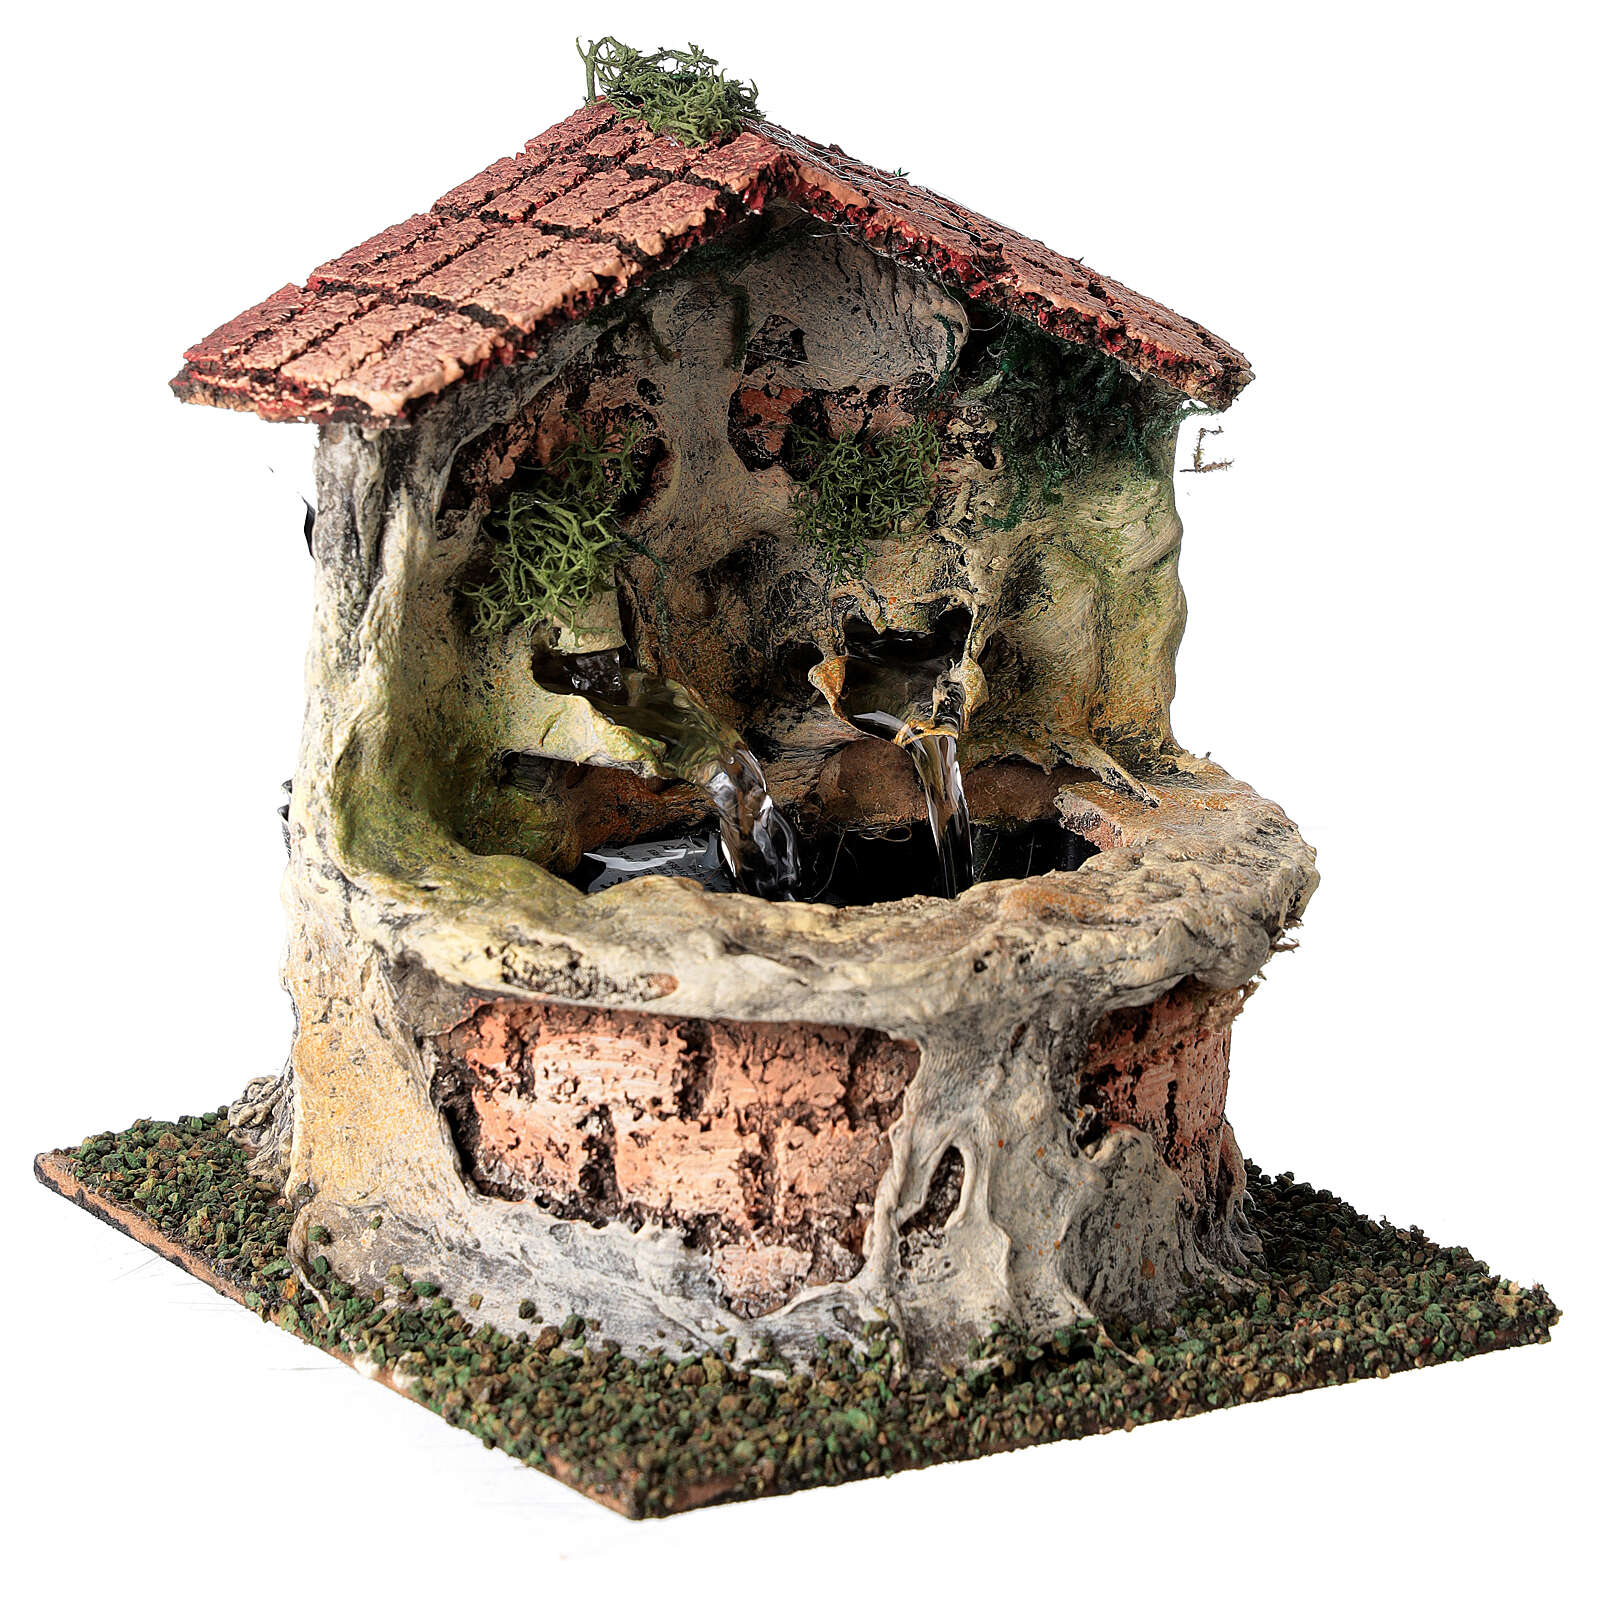 Electric fountain with double tap 15x10x15 cm for Nativity Scene with 10-12 cm figurines 4